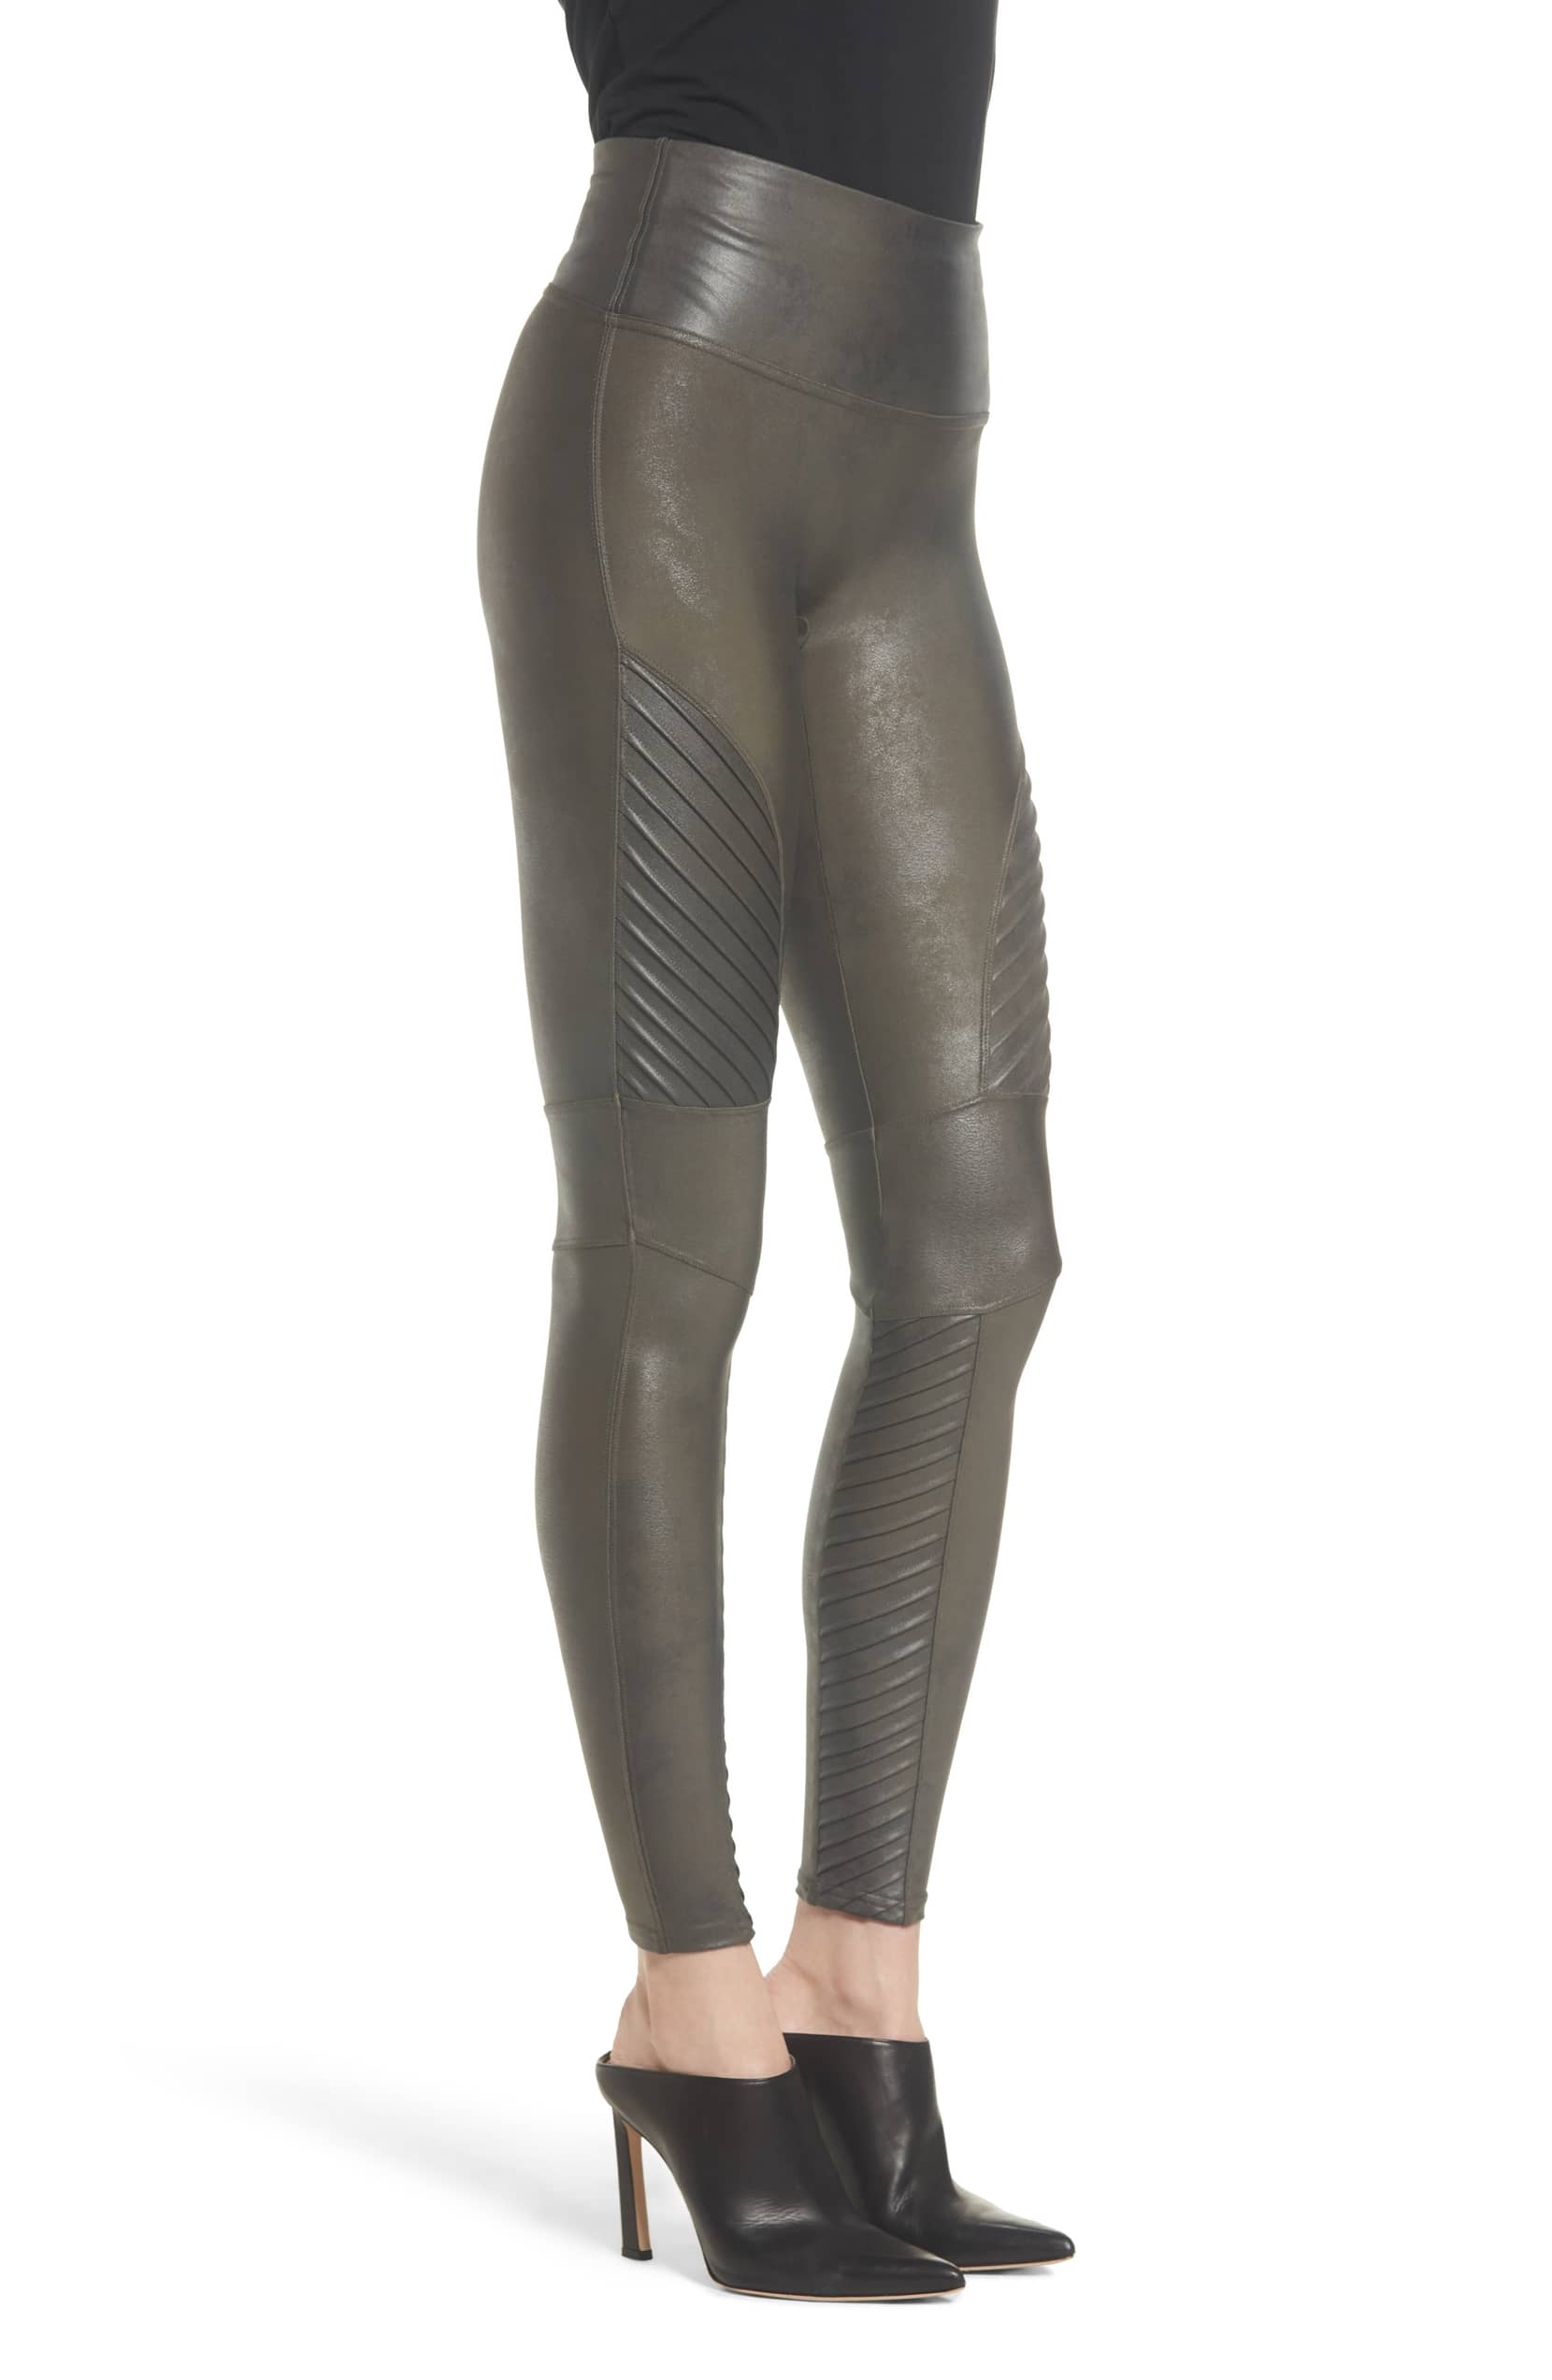 688dfc4436cd8 Shop Our Favorite Spanx Faux Leather Moto Leggings at Nordstrom